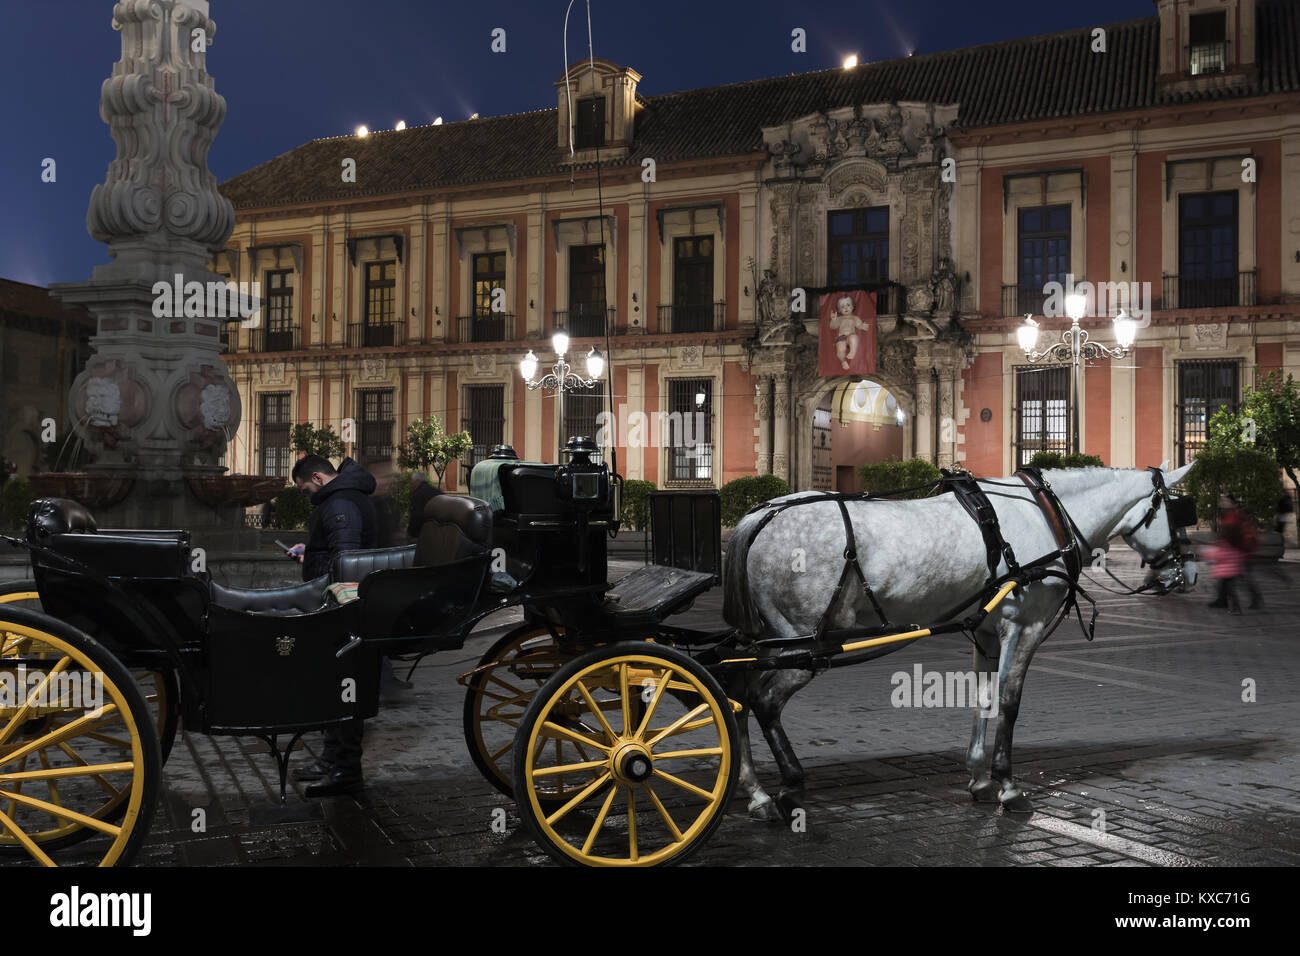 Horse and carriage in Plaza Virgen de los Reyes, Seville, Andalusia, Spain. - Stock Image